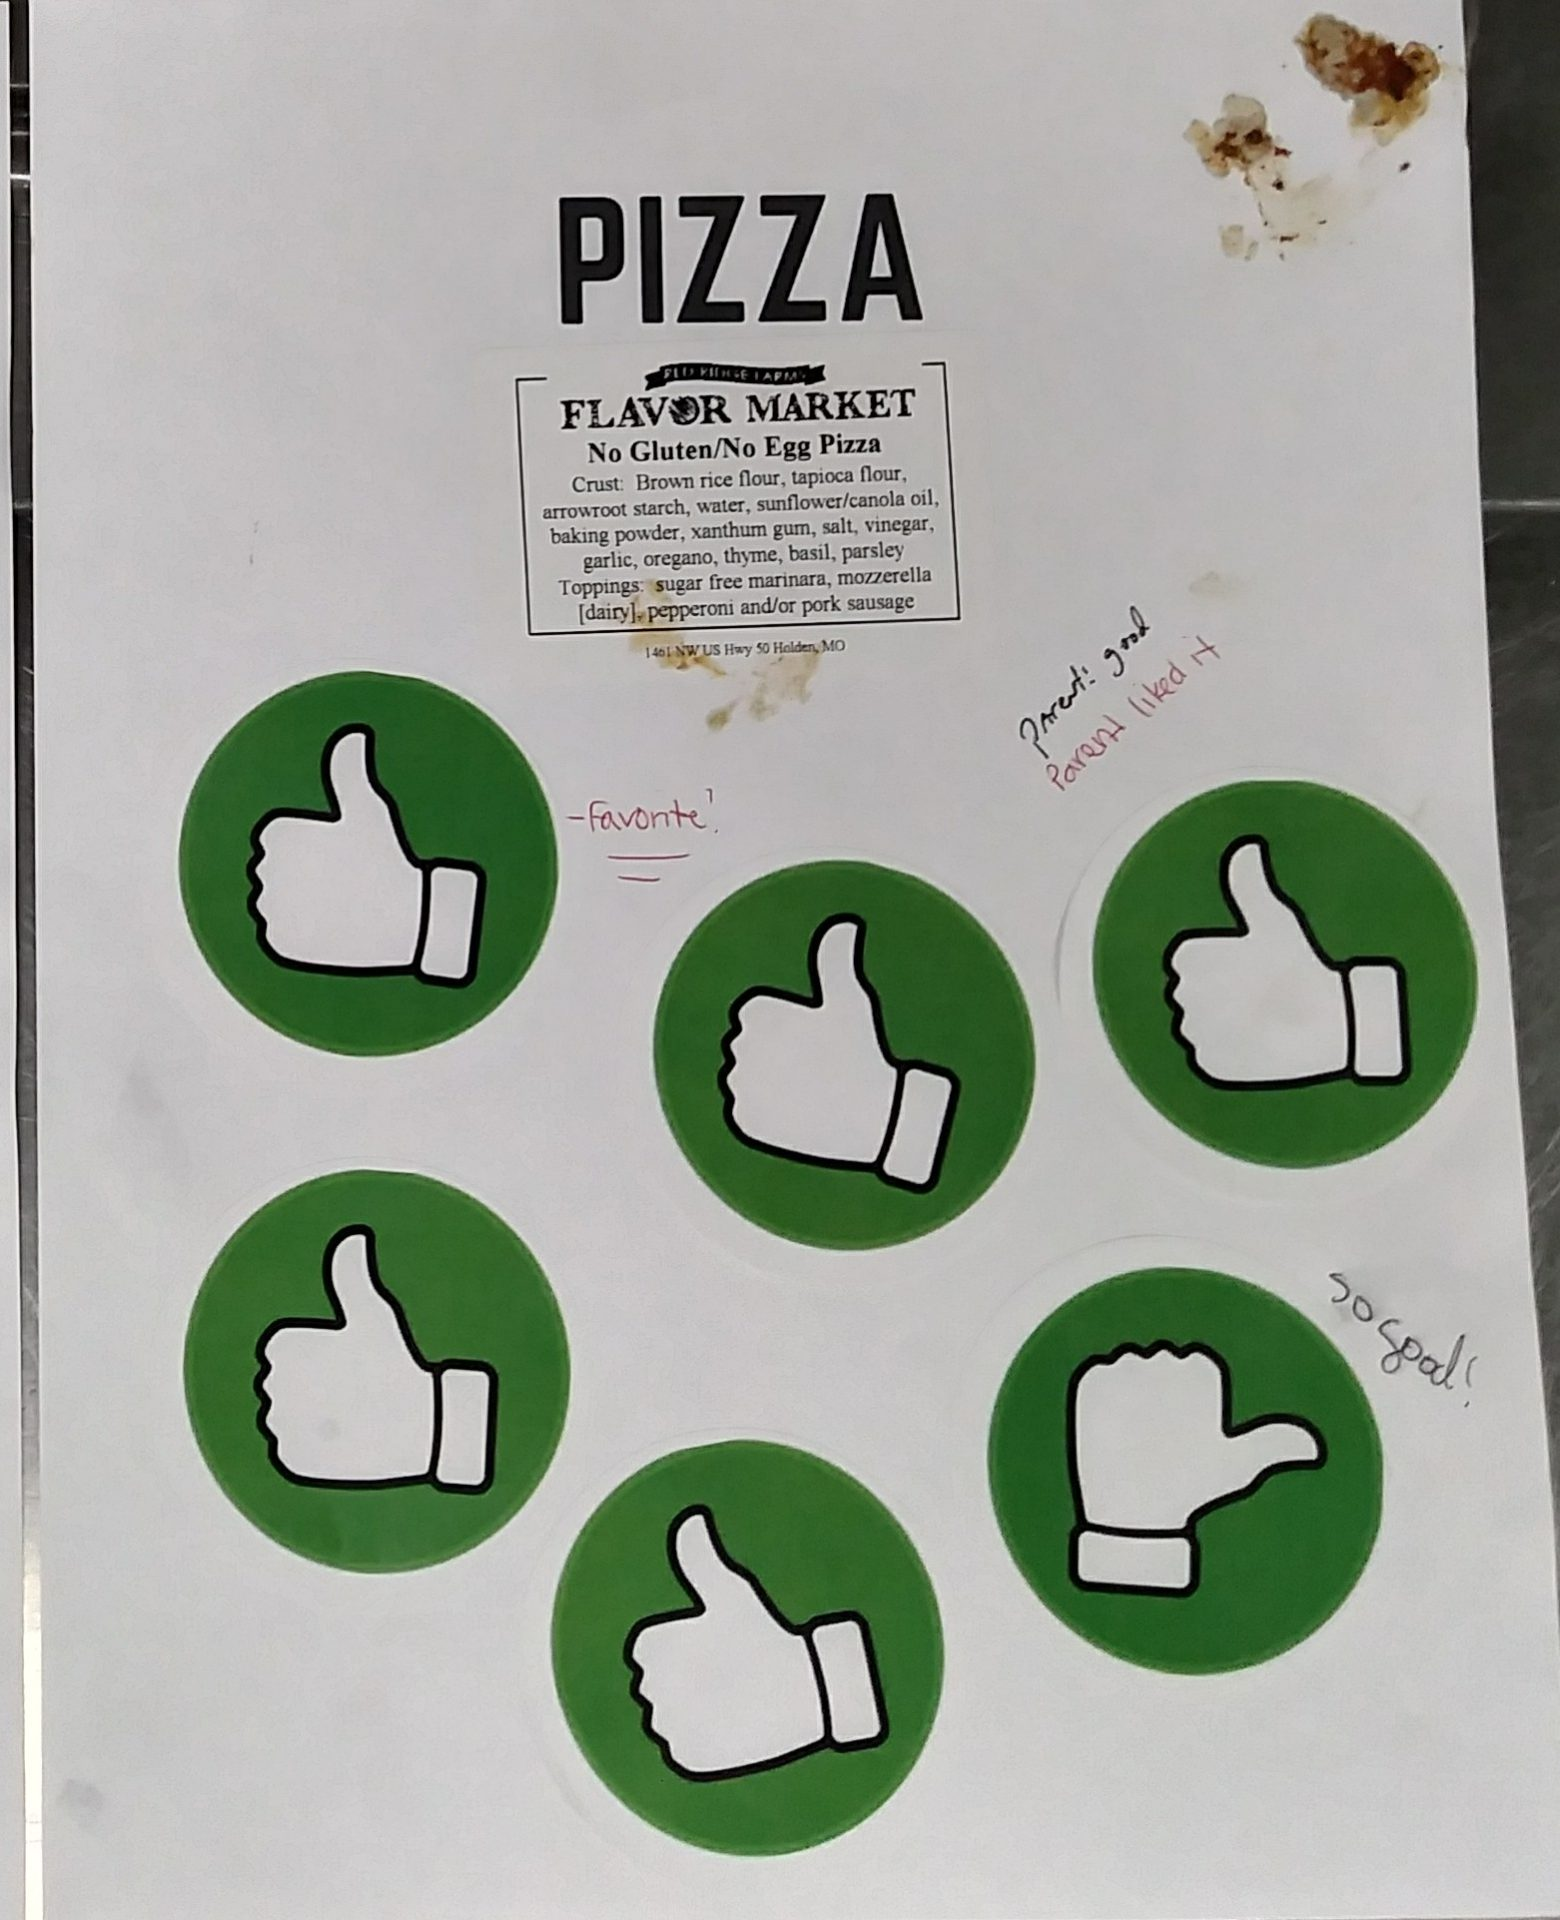 5student eval of pizza